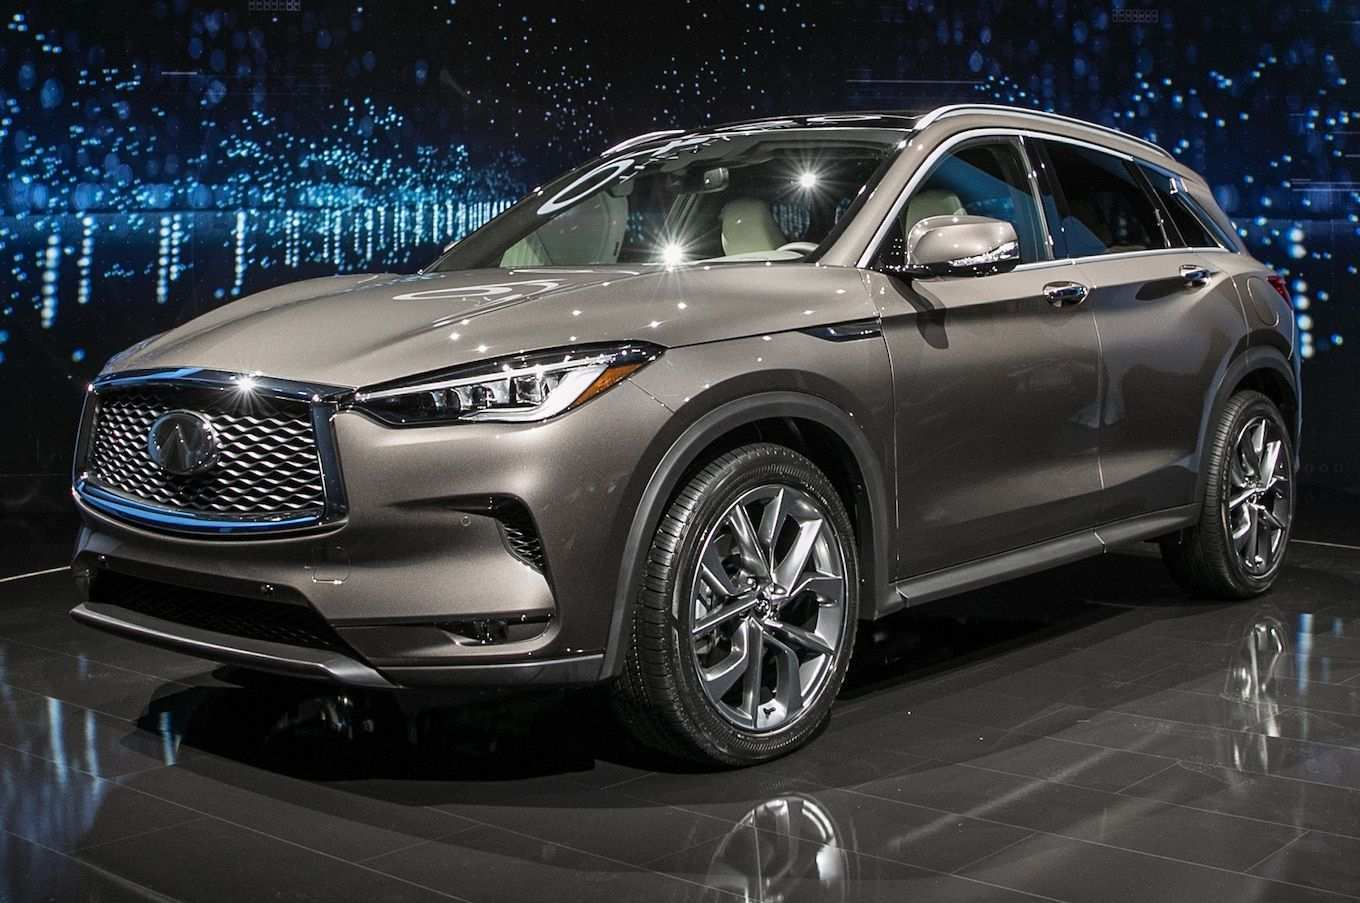 74 Best Review New Infiniti Concept Car 2019 Redesign Spy Shoot by New Infiniti Concept Car 2019 Redesign